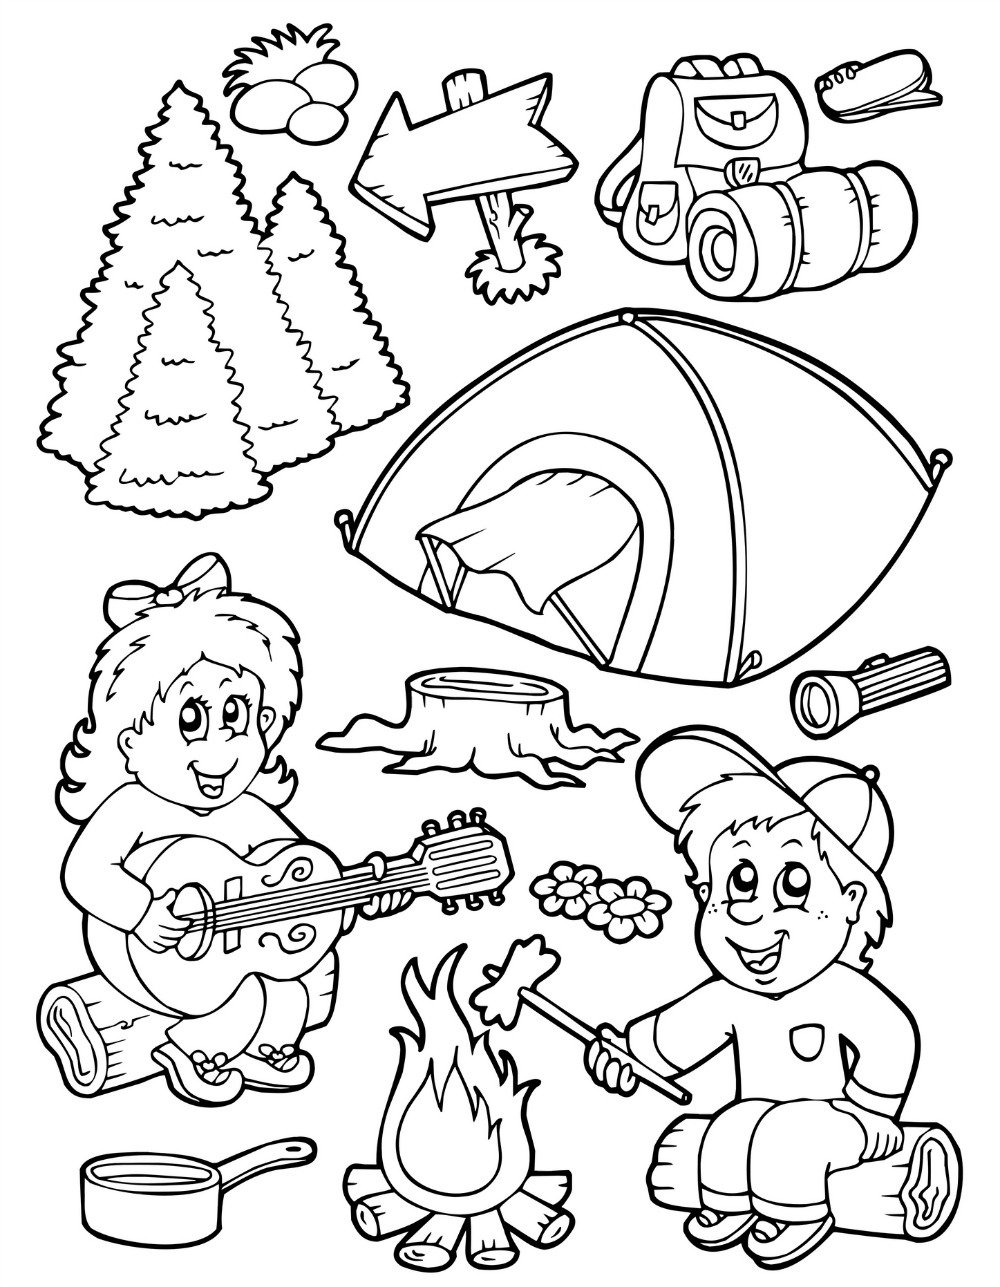 Epic Camping Coloring Pages 96 For Coloring Pages For Kids Online